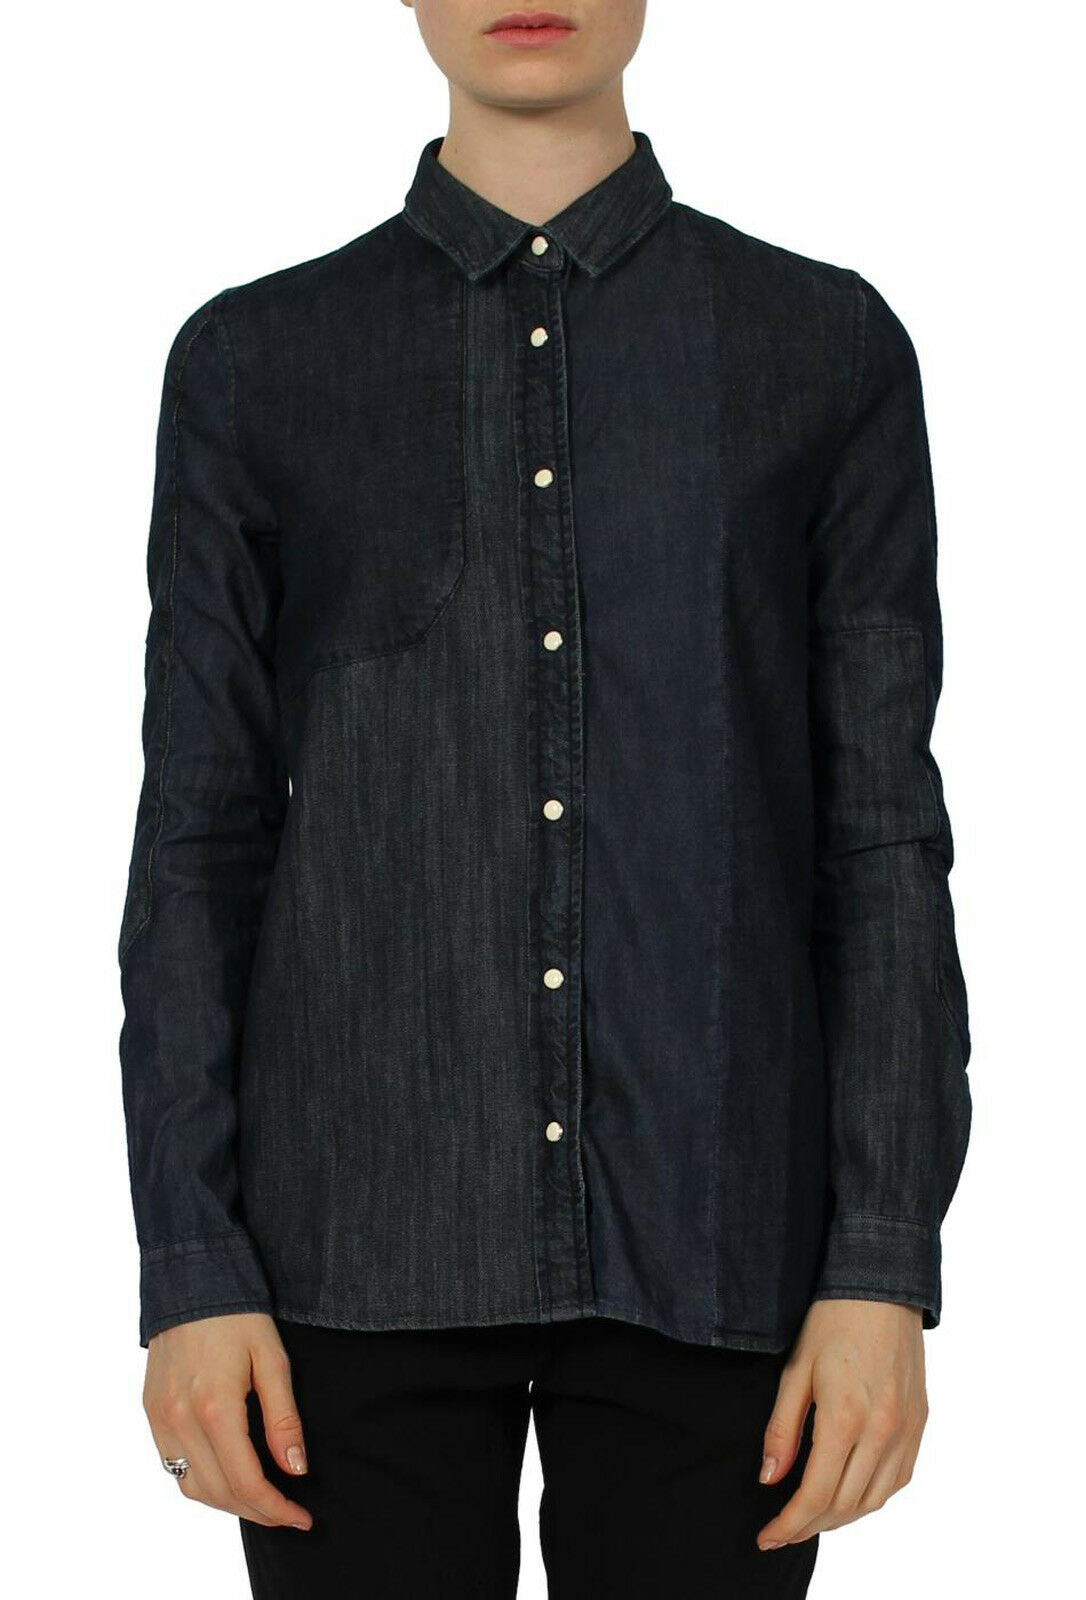 SURFACE TO AIR Woherren Dark Blau Stormy Denim Shirt Sz 38  NEW